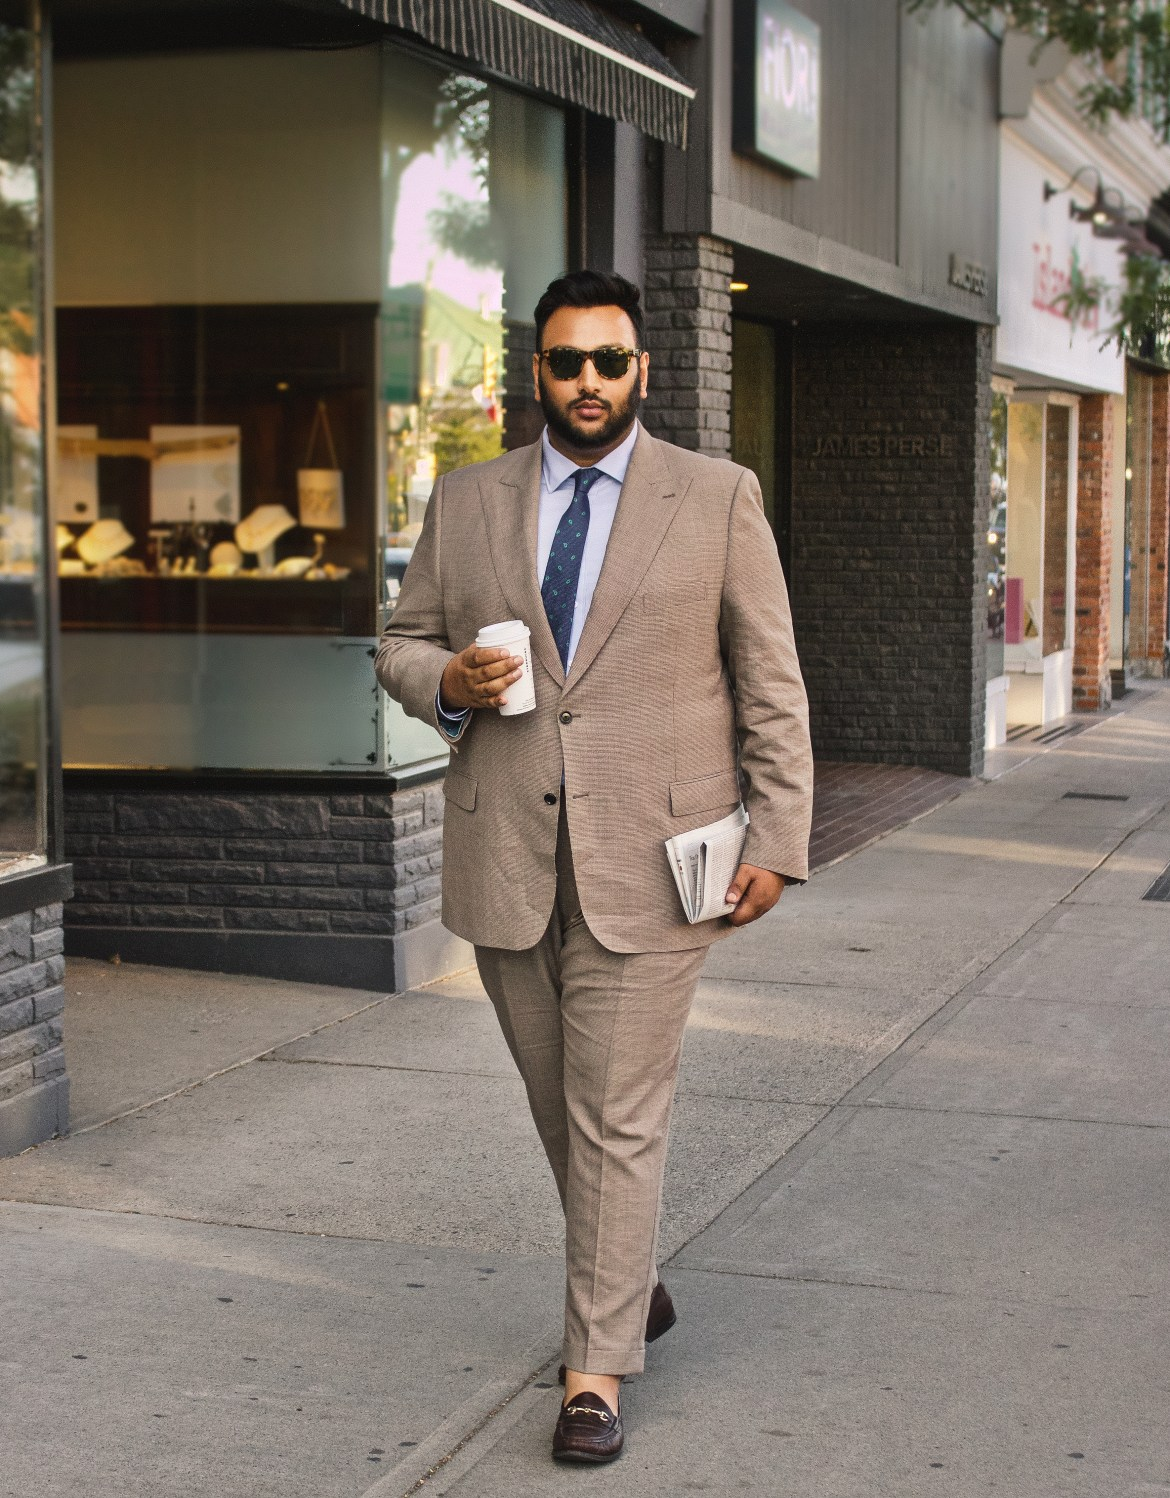 The Made to Measure Suit - Indochino Review